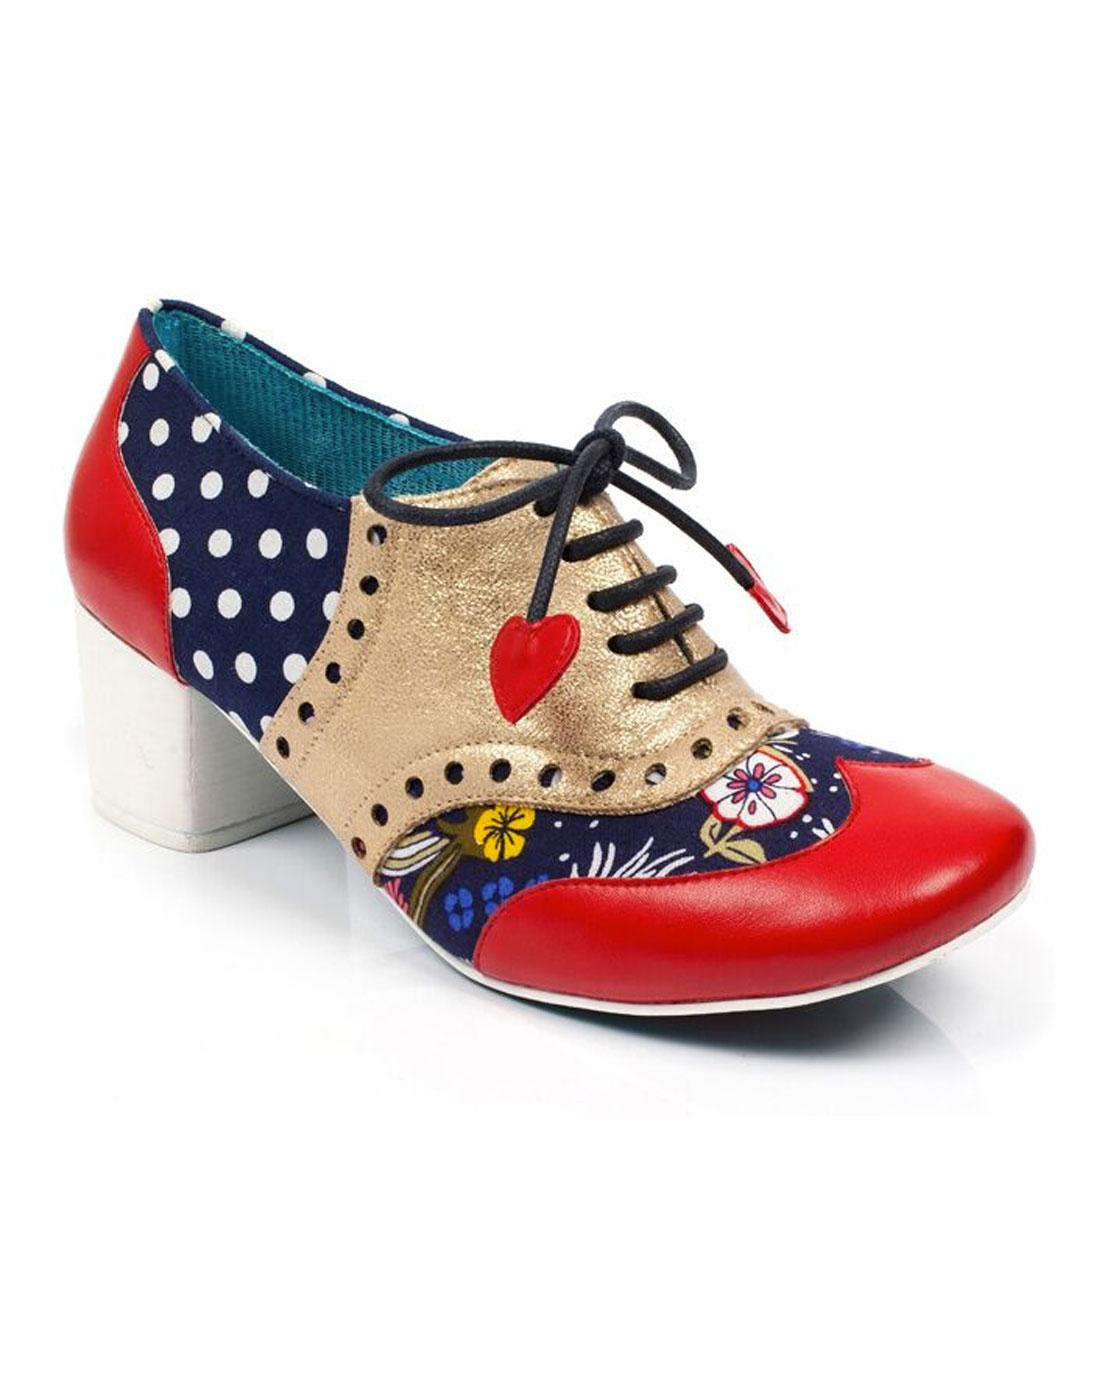 Clara Bow POETIC LICENCE Polka Dot Brogue Heels R